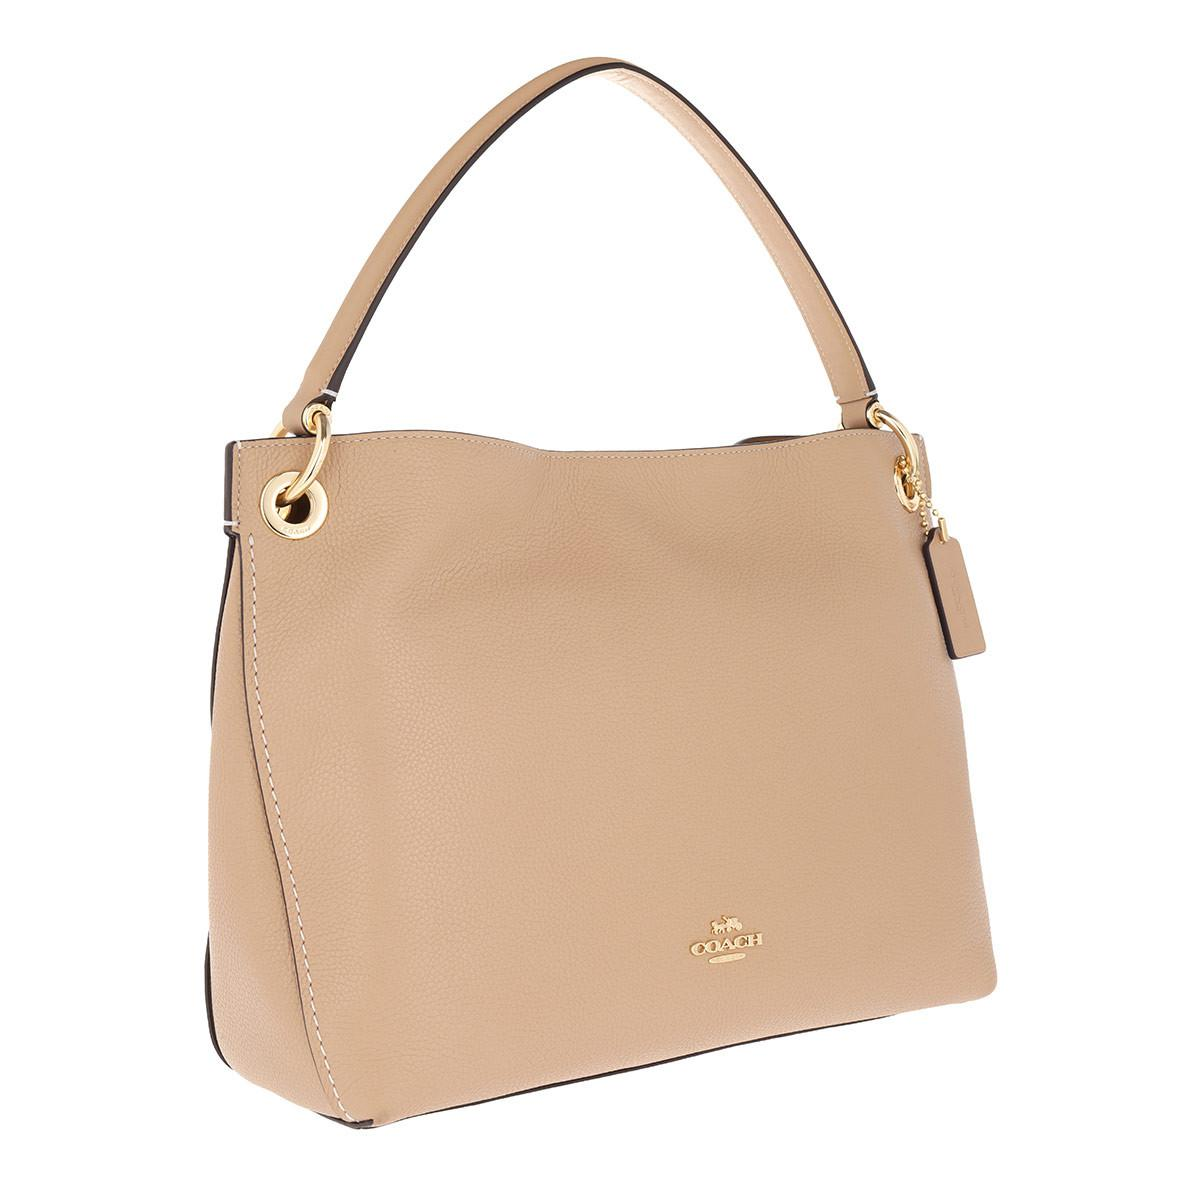 8e9fd4fd69ade COACH - Natural Polished Pebbled Leather Clarkson Hobo Bag Beechwood - Lyst